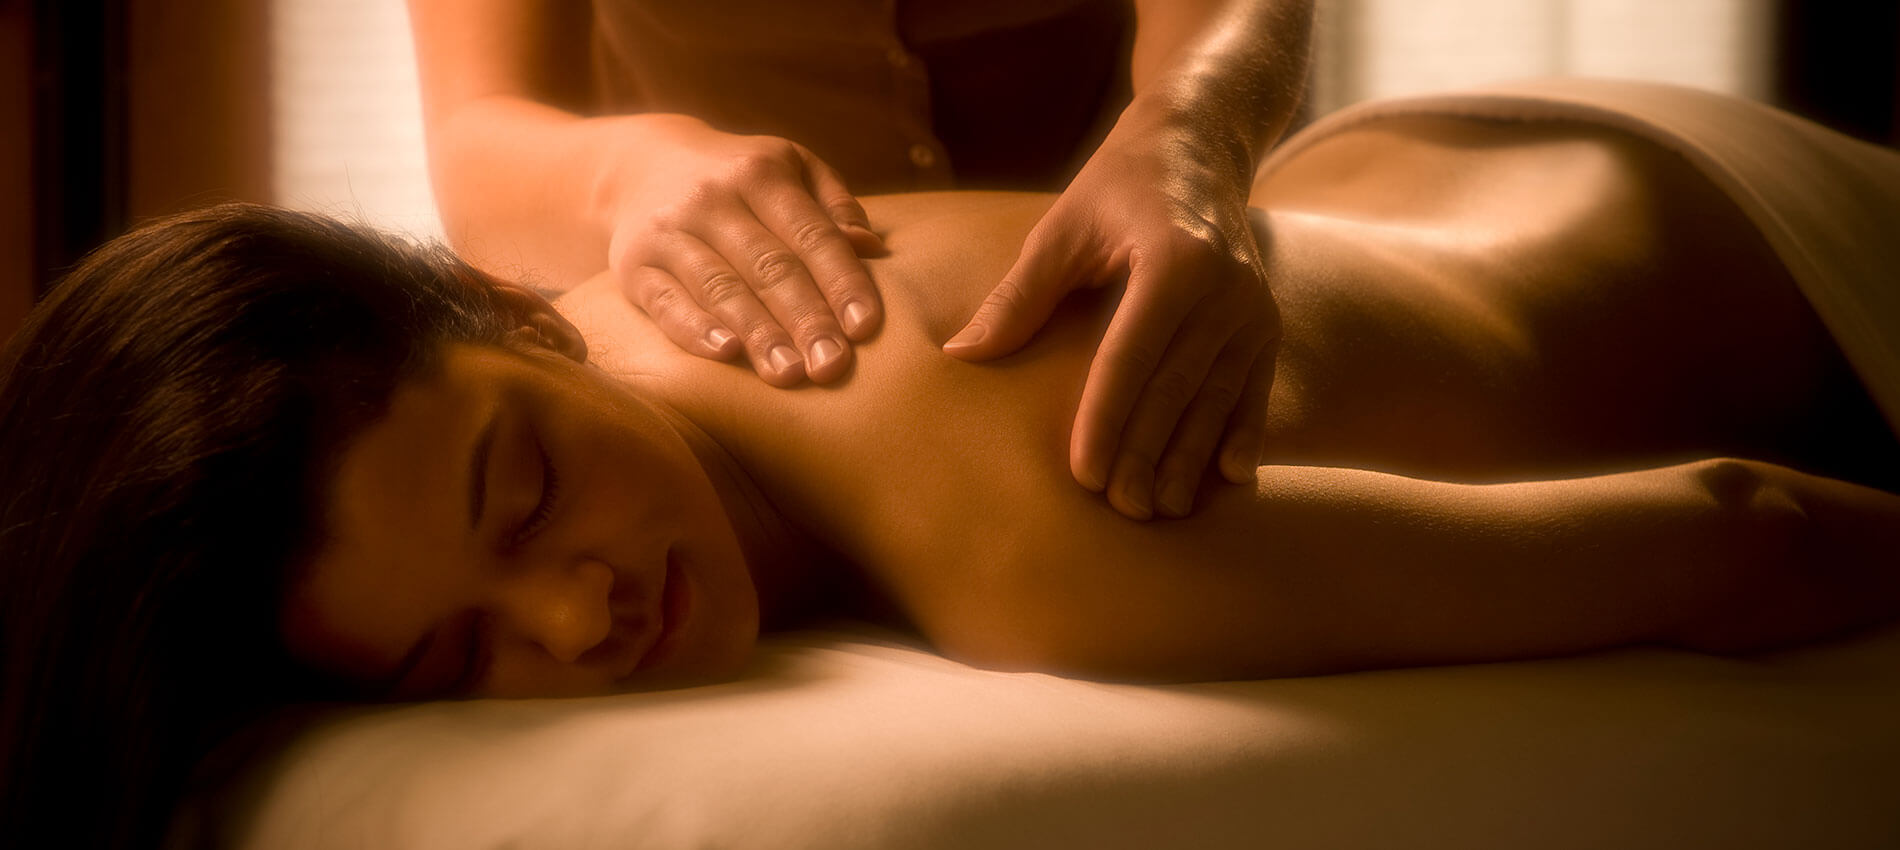 Two Special Types of Massage in Orlando